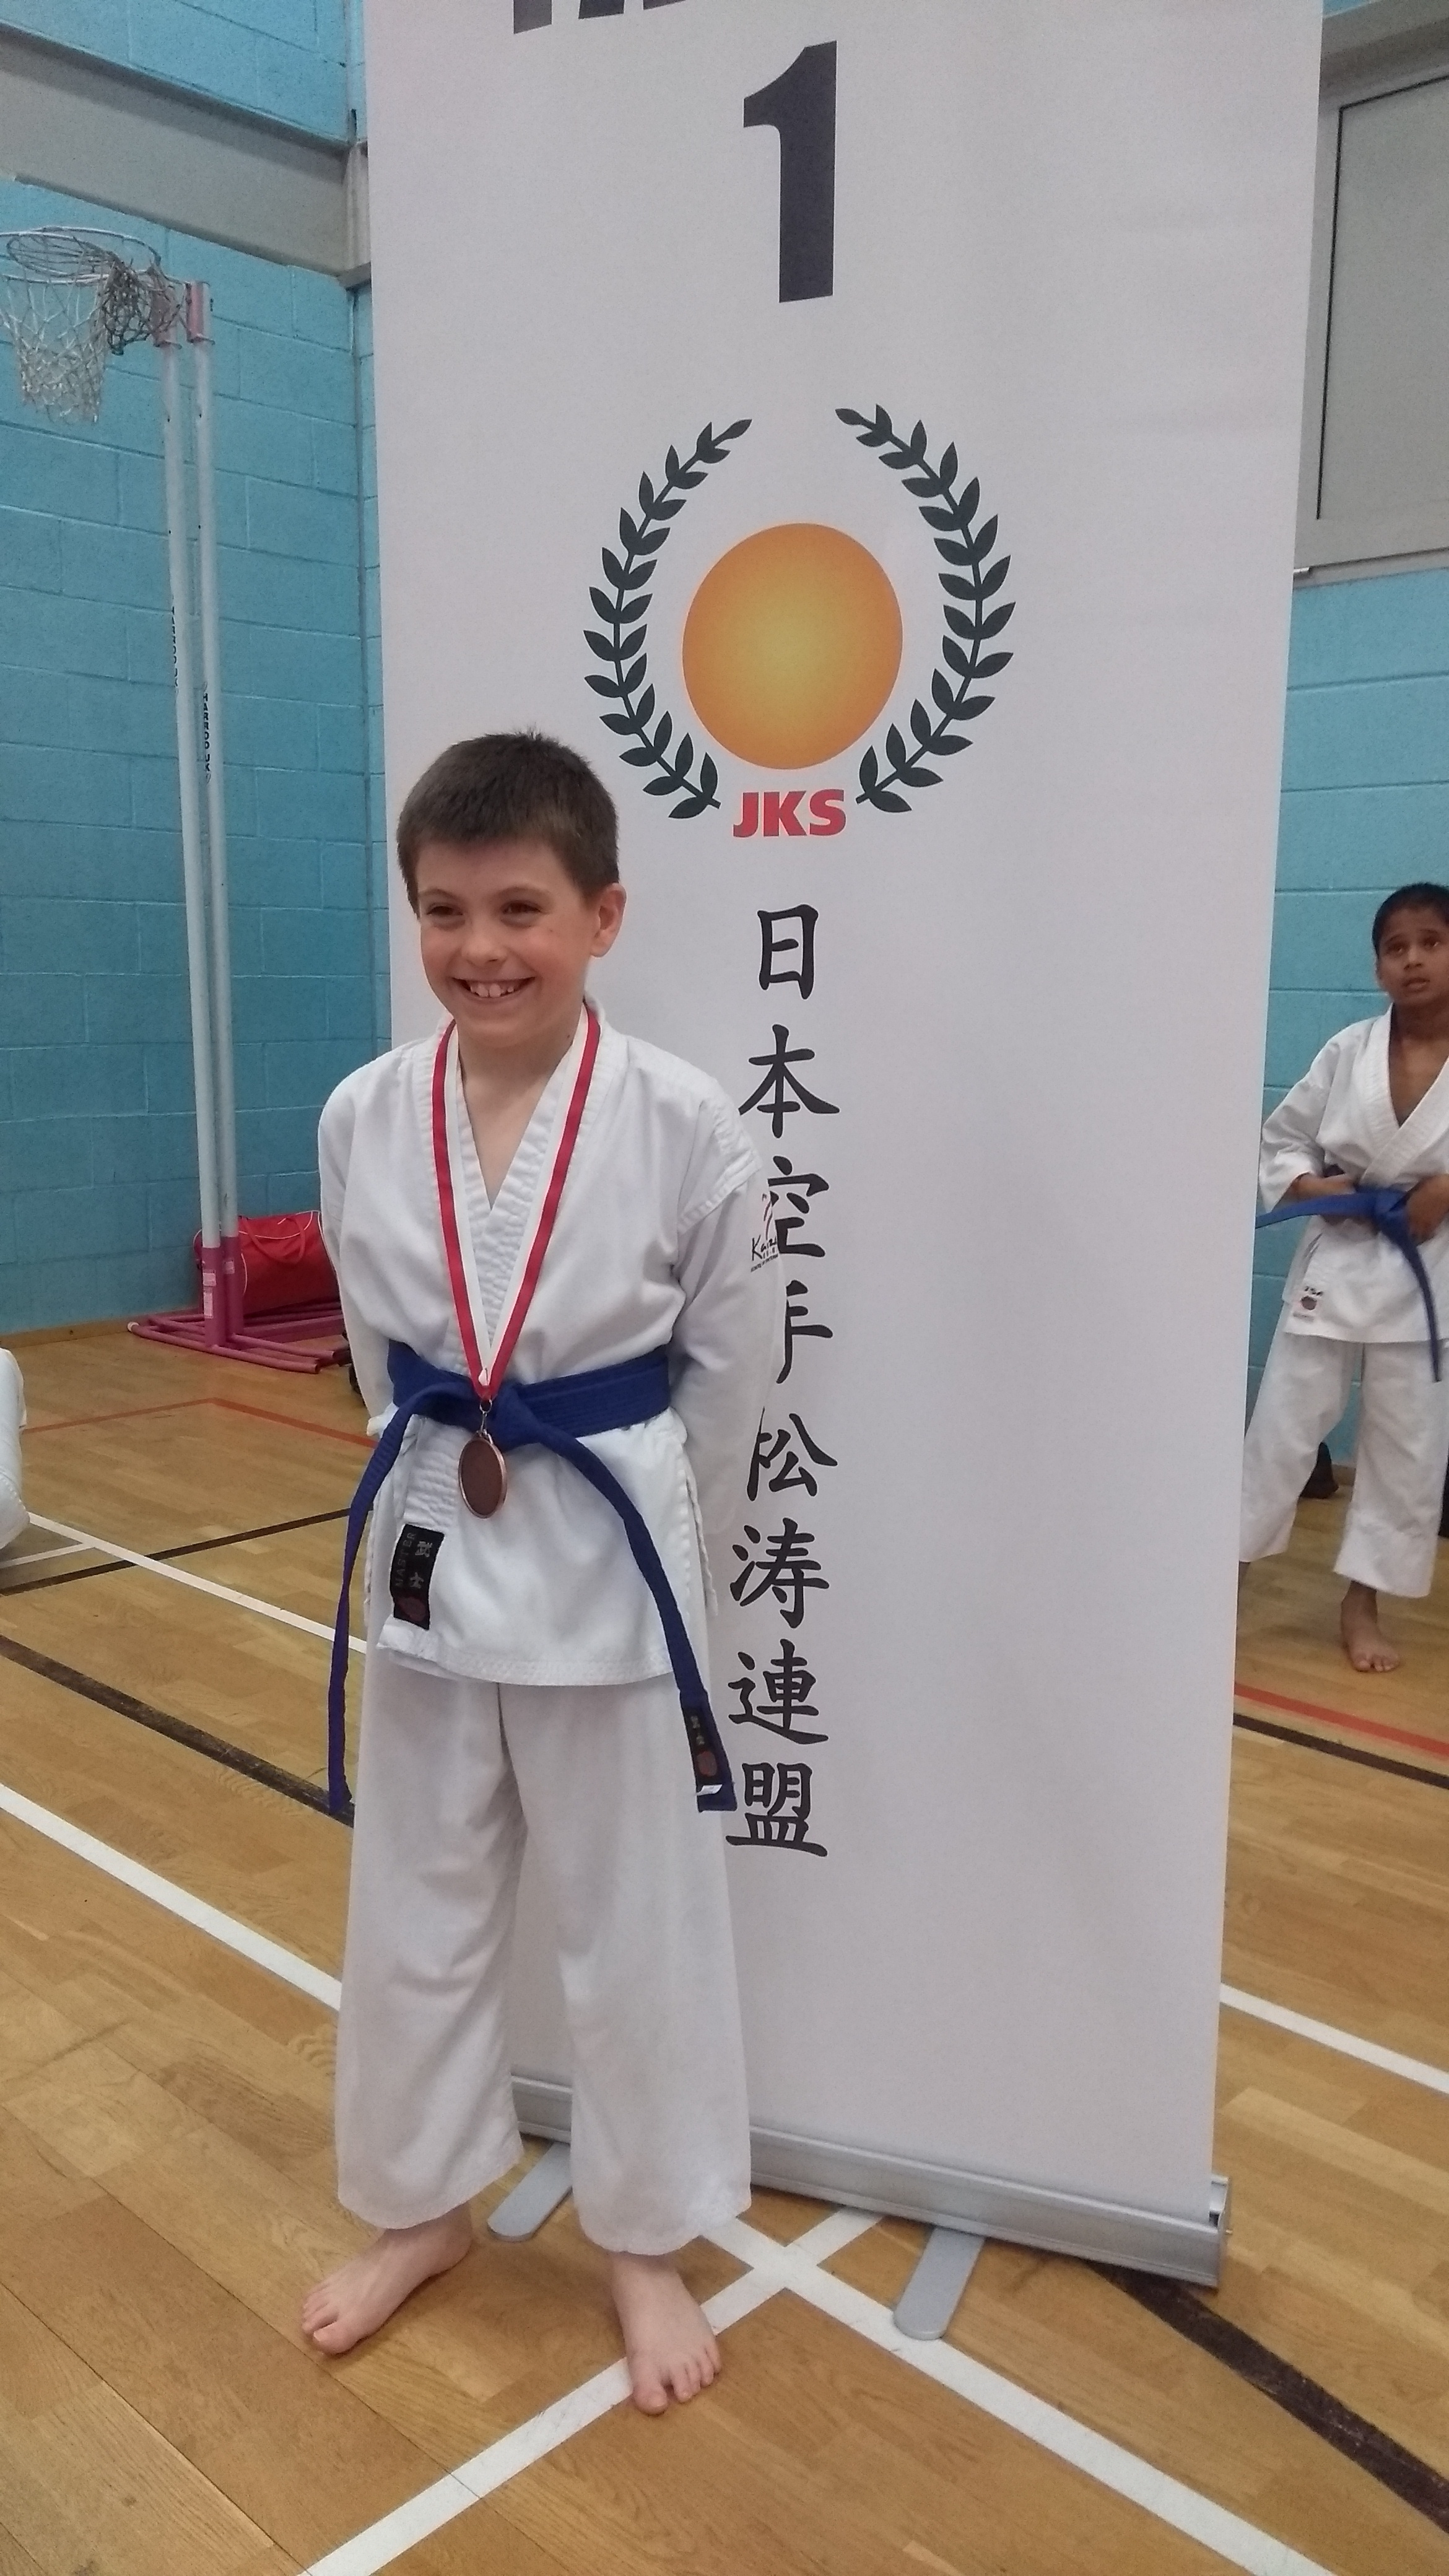 JKS National Karate Championships